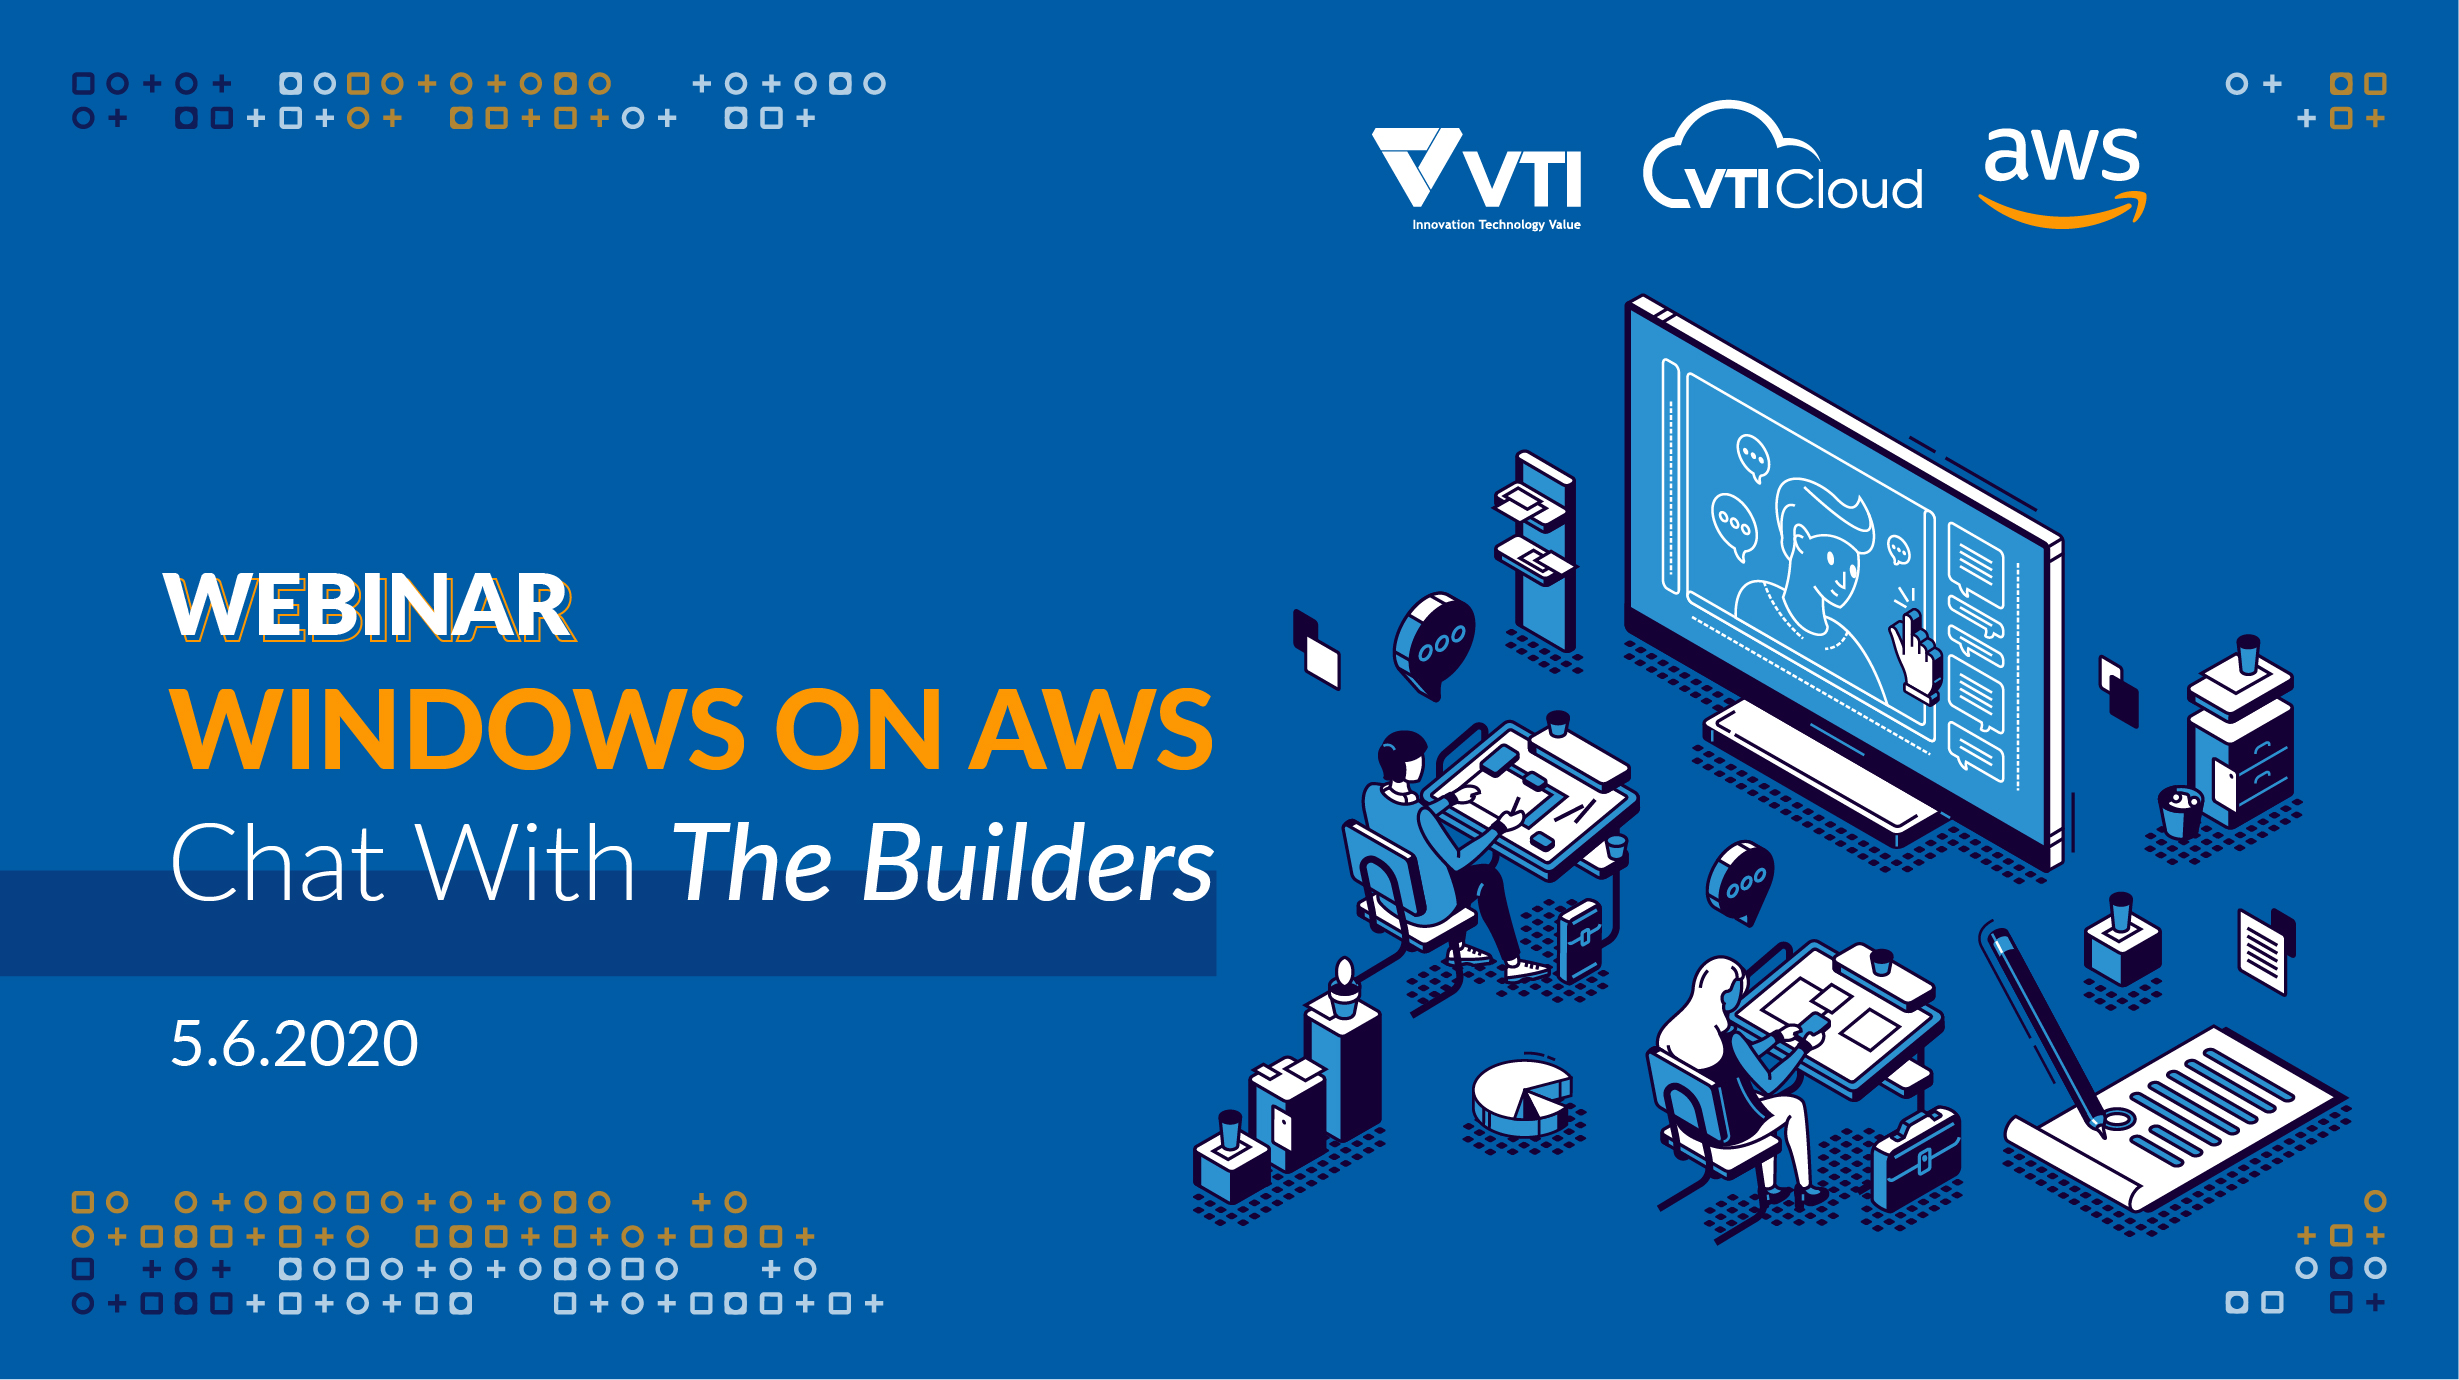 VTI WITH EVENTS – WINDOWS ON AWS